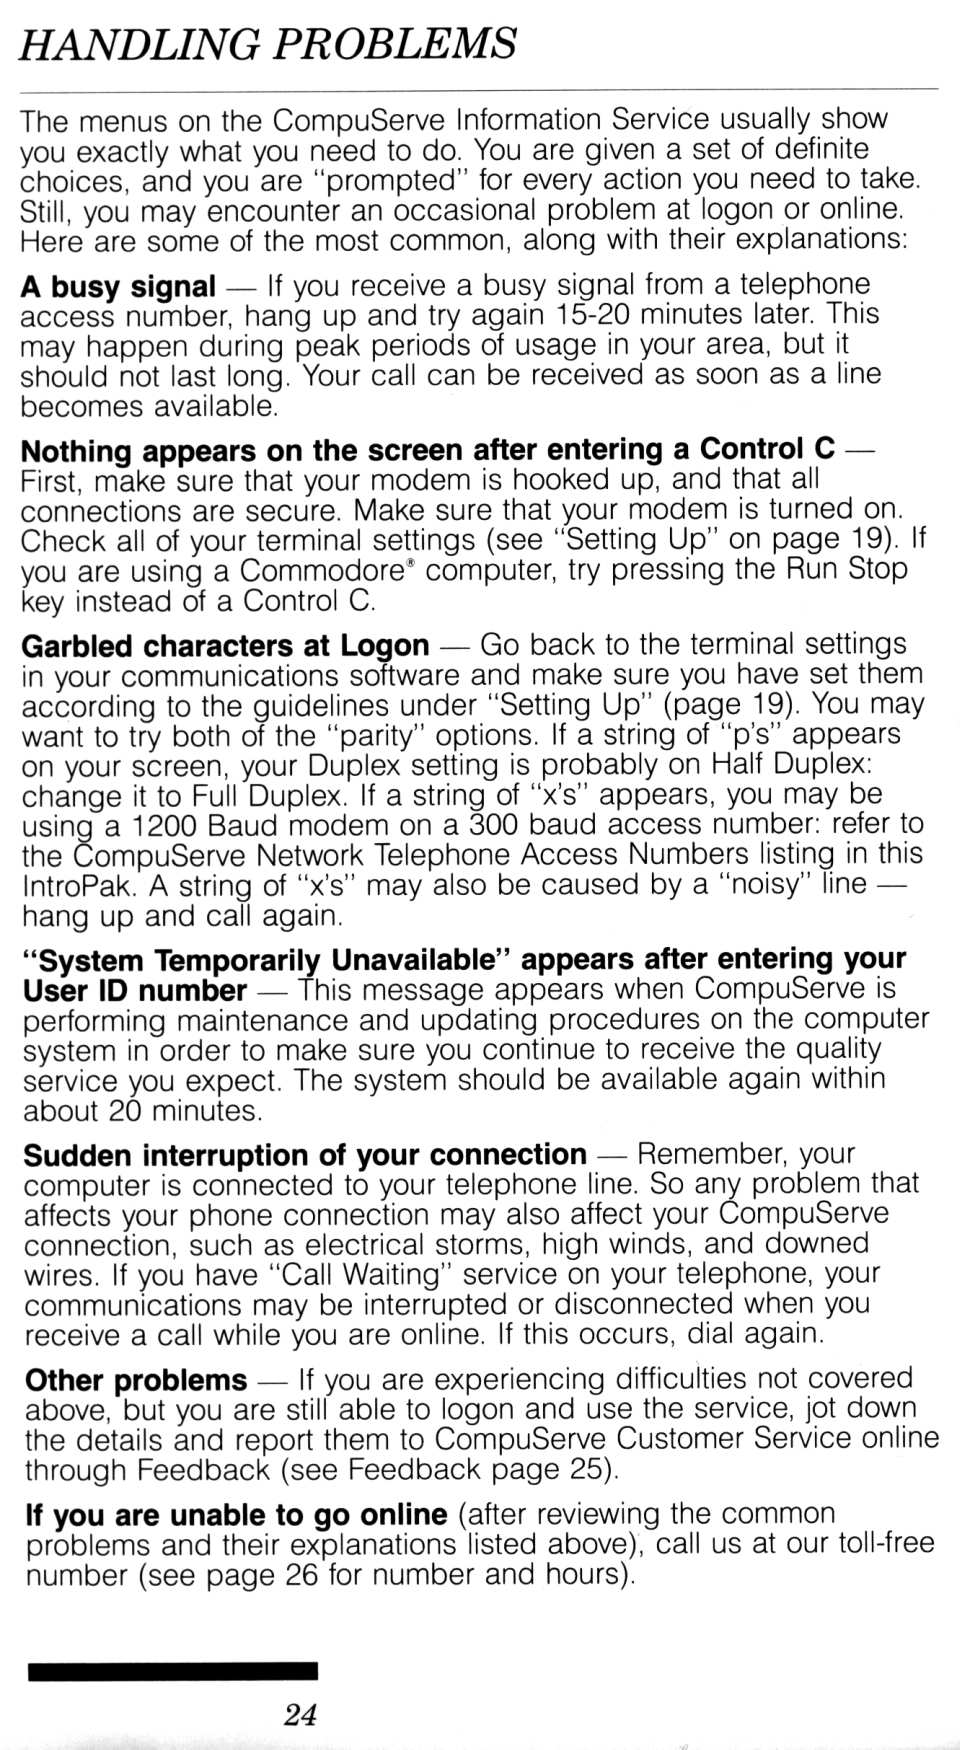 [CompuServe IntroPak page 24/44  Handling Problems]